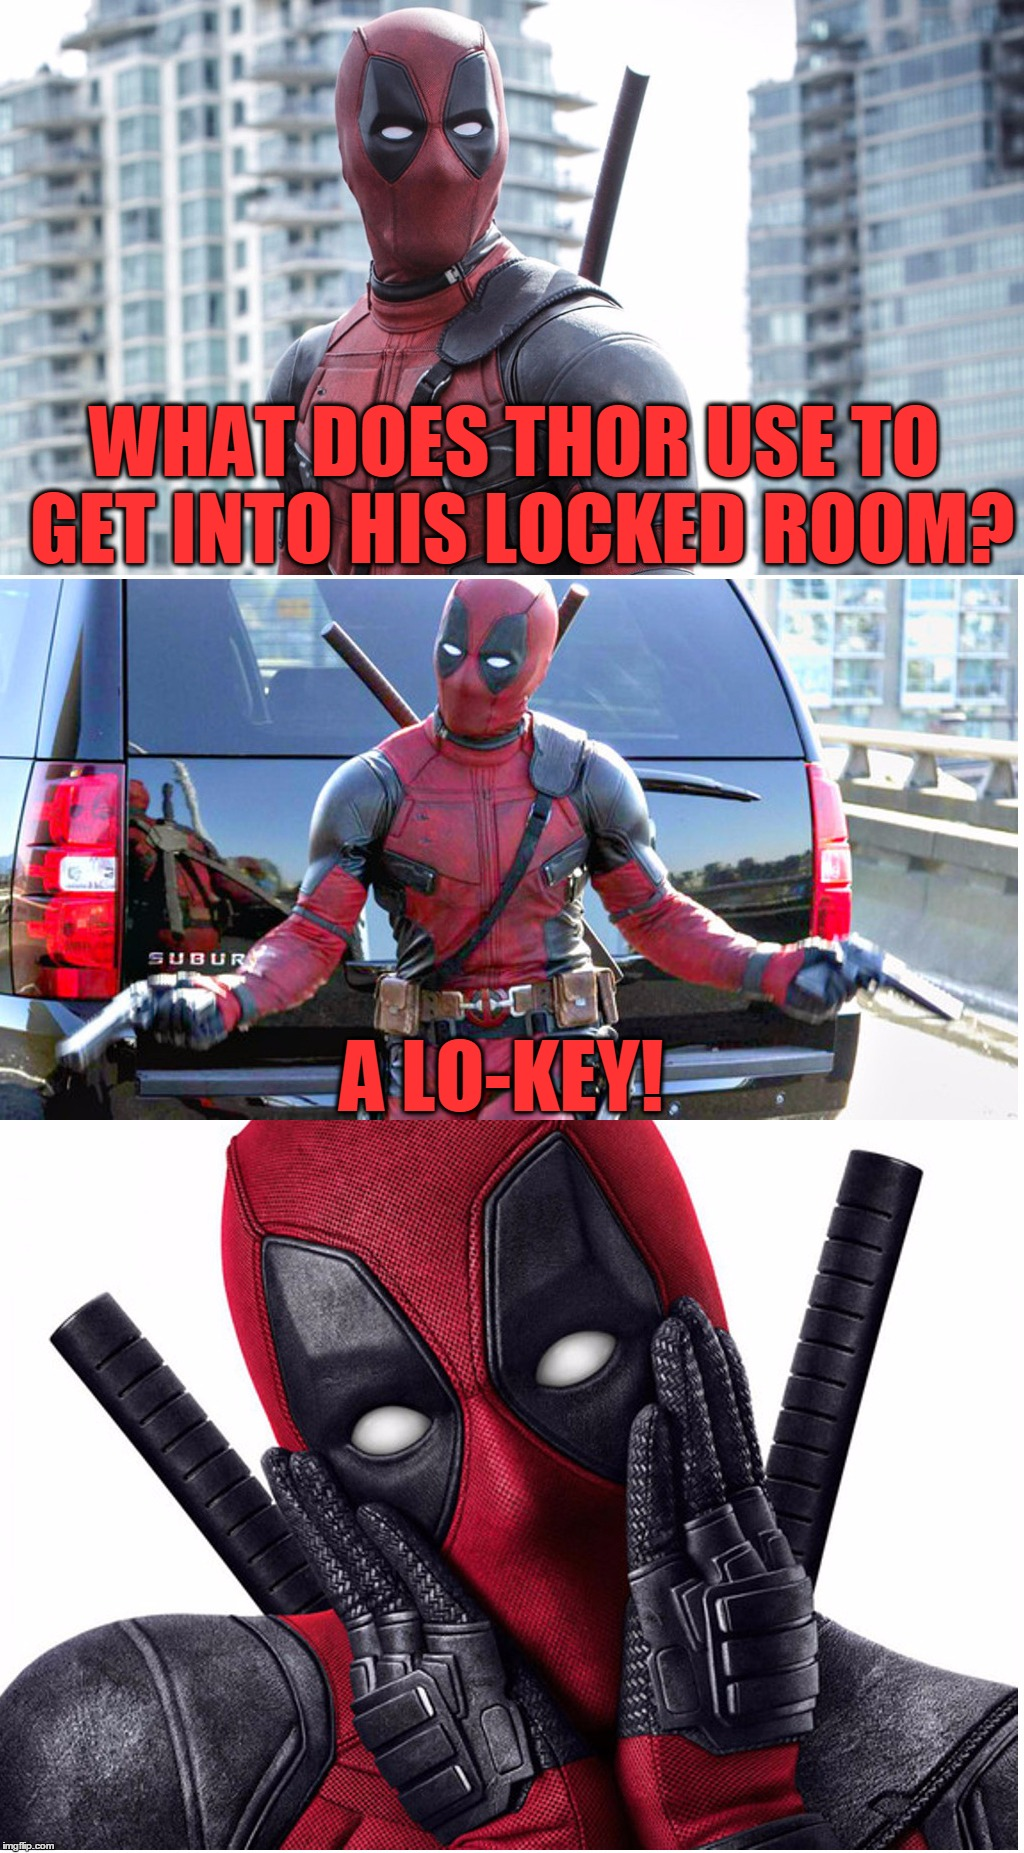 Bad Pun Deadpool |  WHAT DOES THOR USE TO GET INTO HIS LOCKED ROOM? A LO-KEY! | image tagged in bad pun deadpool,bad pun,deadpool,marvel,memes,funny | made w/ Imgflip meme maker